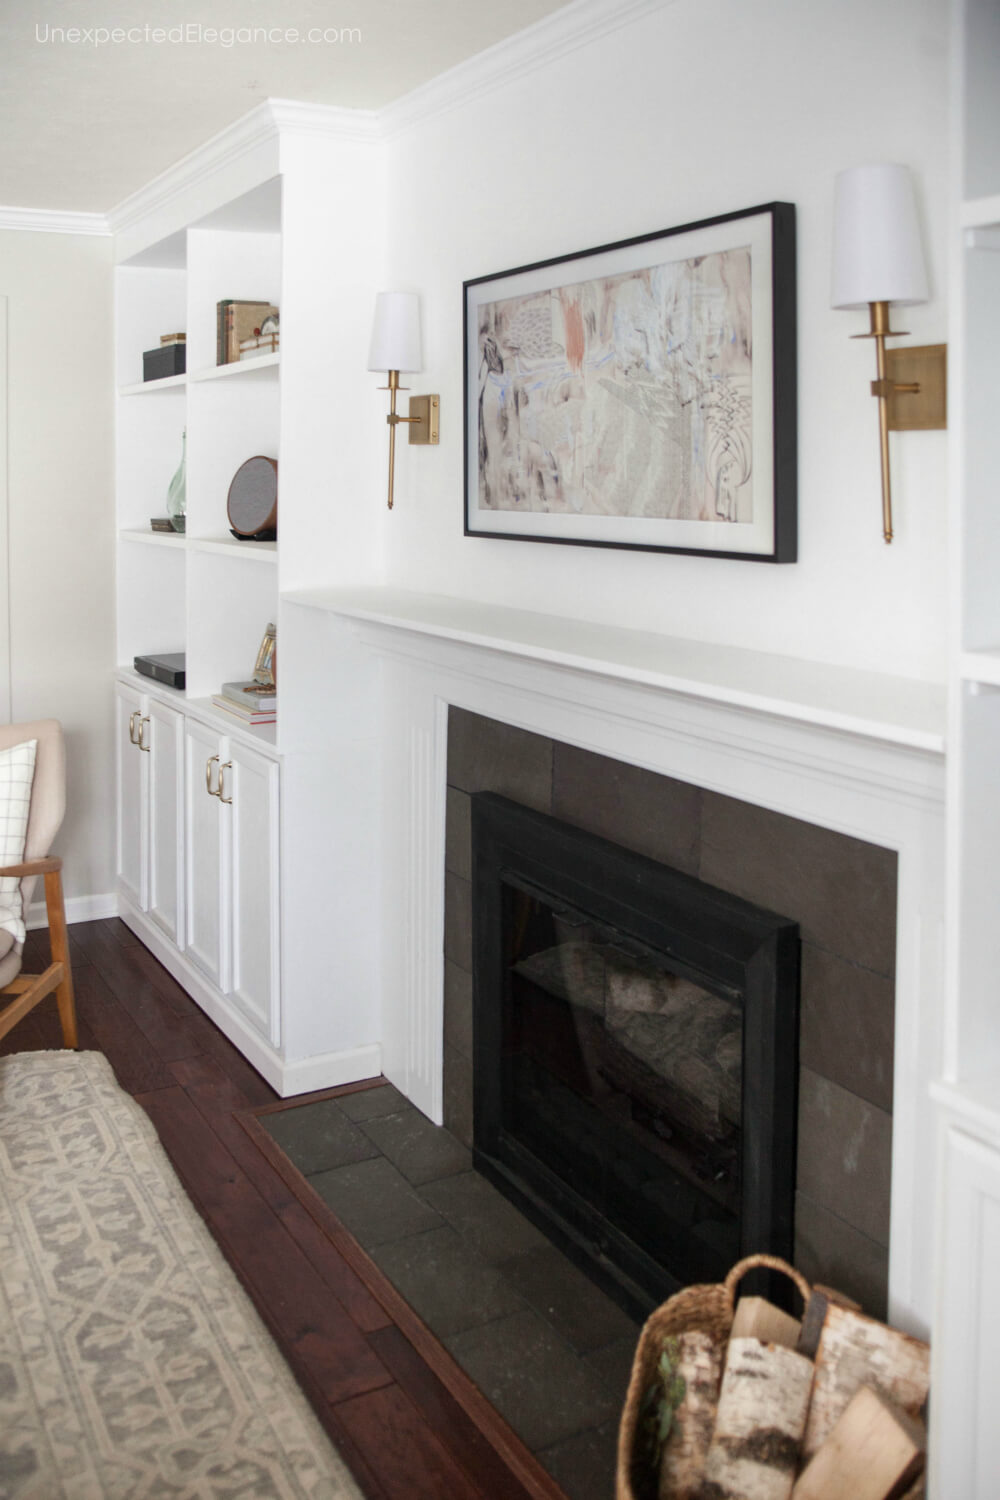 How To Hang A Tv Over A Fireplace Unexpected Elegance